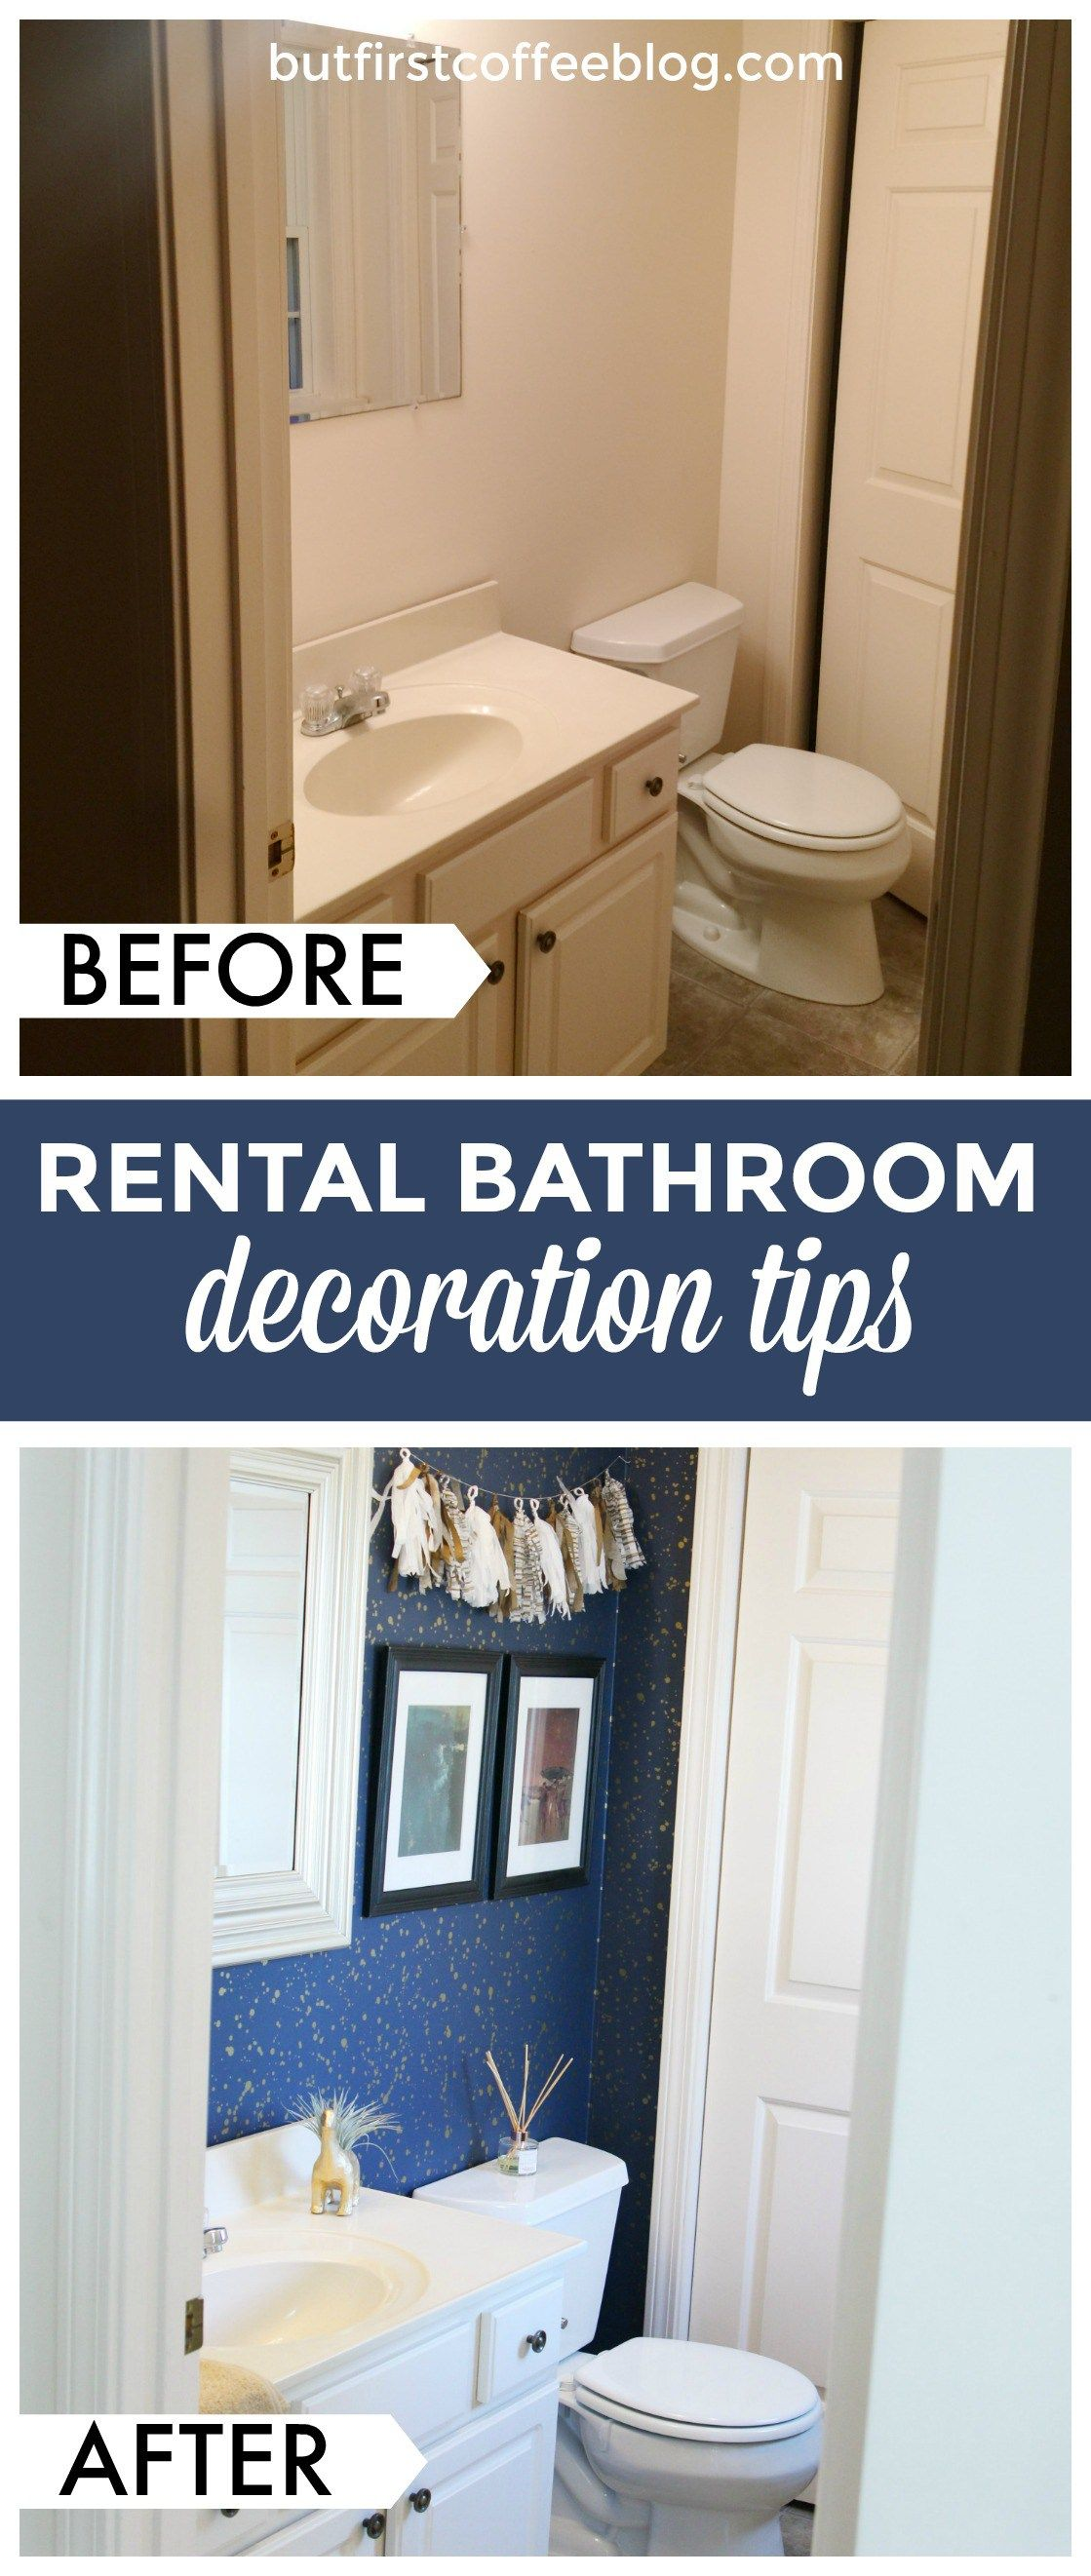 How To Decorate A Small Apartment Bathroom How To Decorate Your Rental Space Bathroom Rental Decor Top